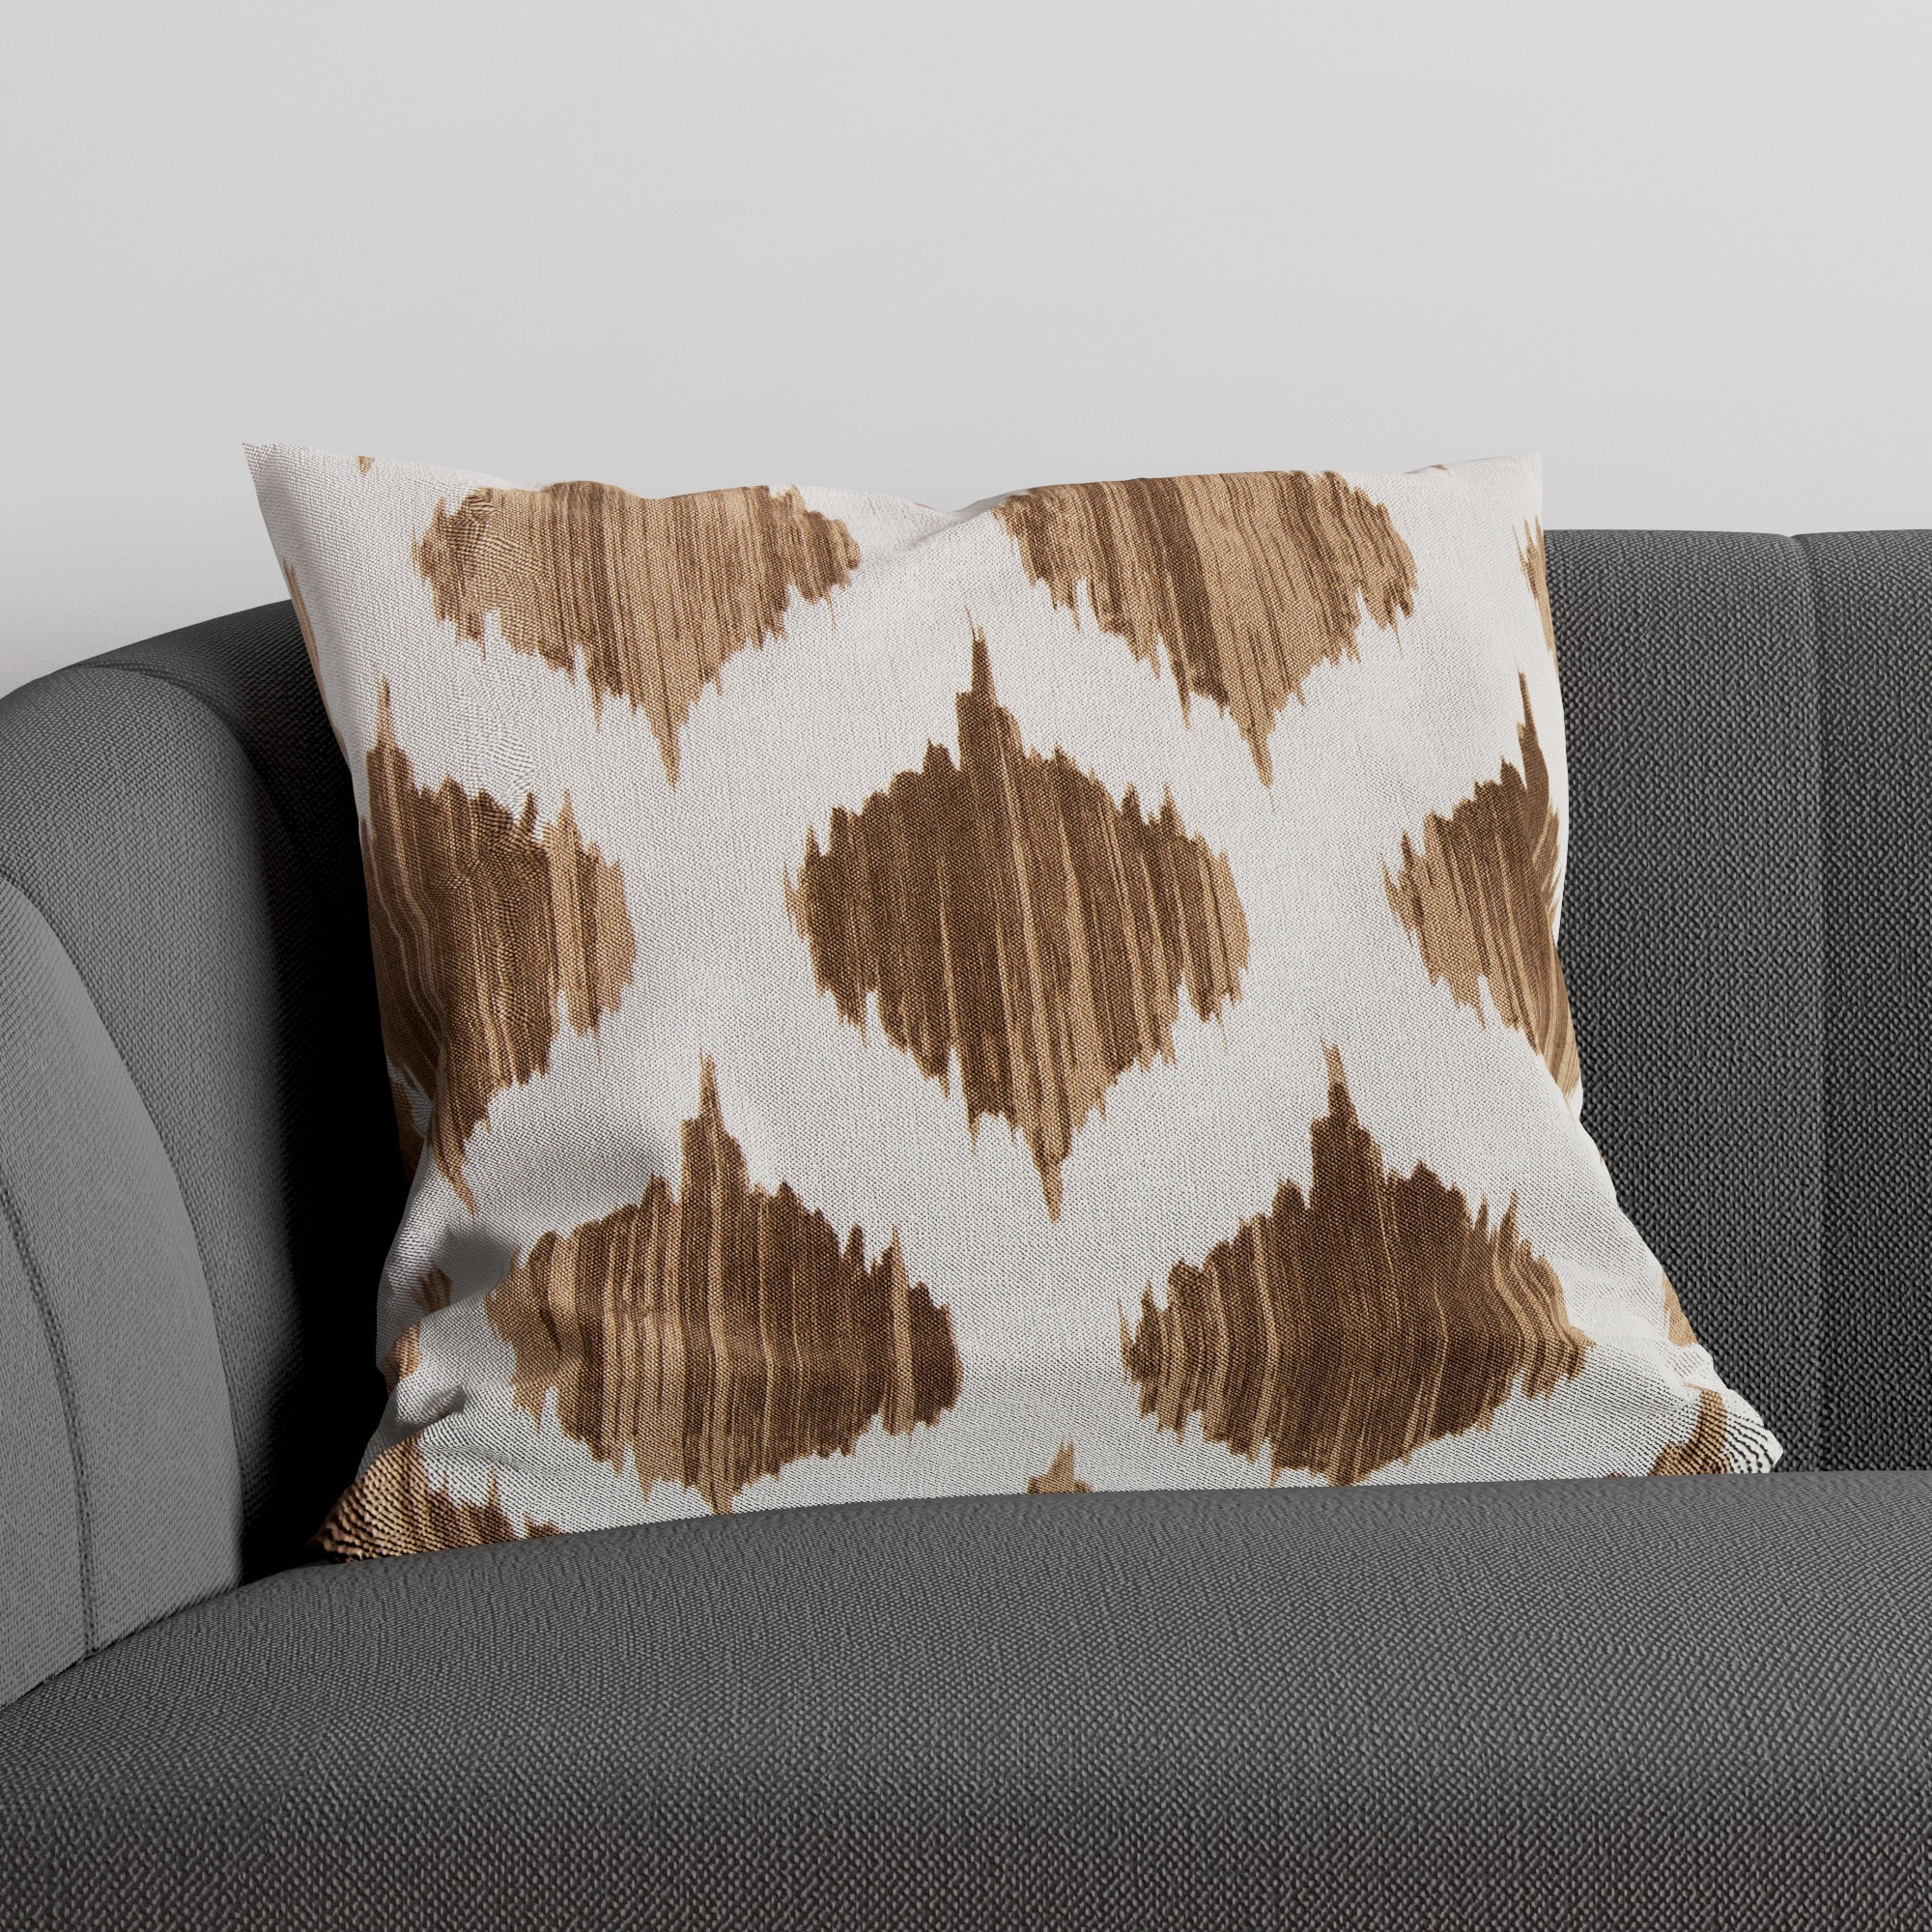 Allston-Brighton Denby Decorative 18-inch Poly or Down-filled Throw Pillow